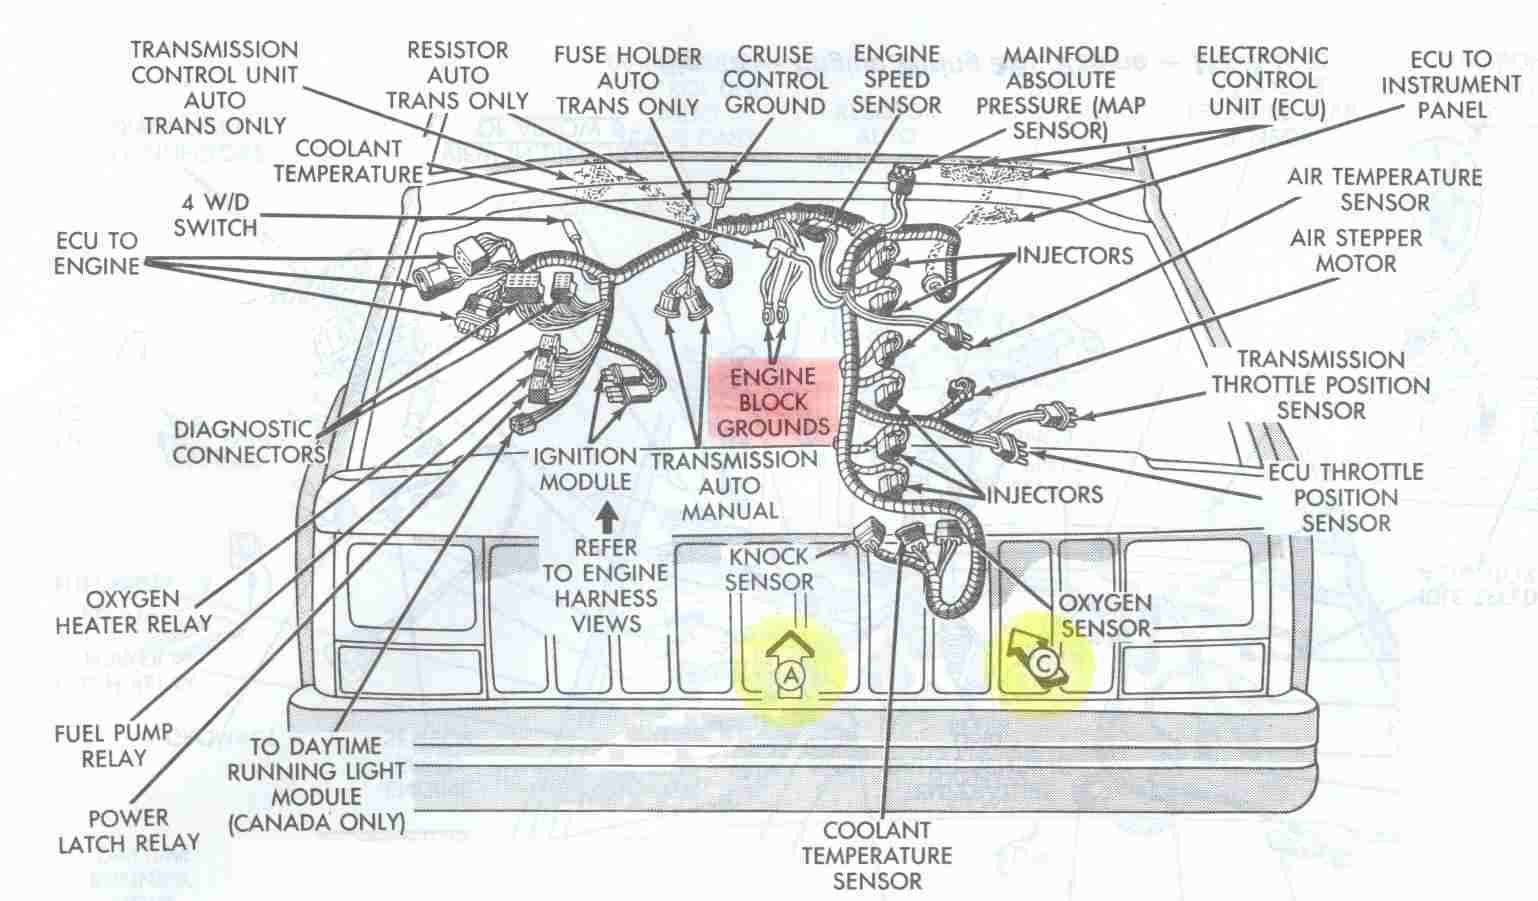 ab0134a7d9e021431187af597eb4aeca engine bay schematic showing major electrical ground points for  at panicattacktreatment.co